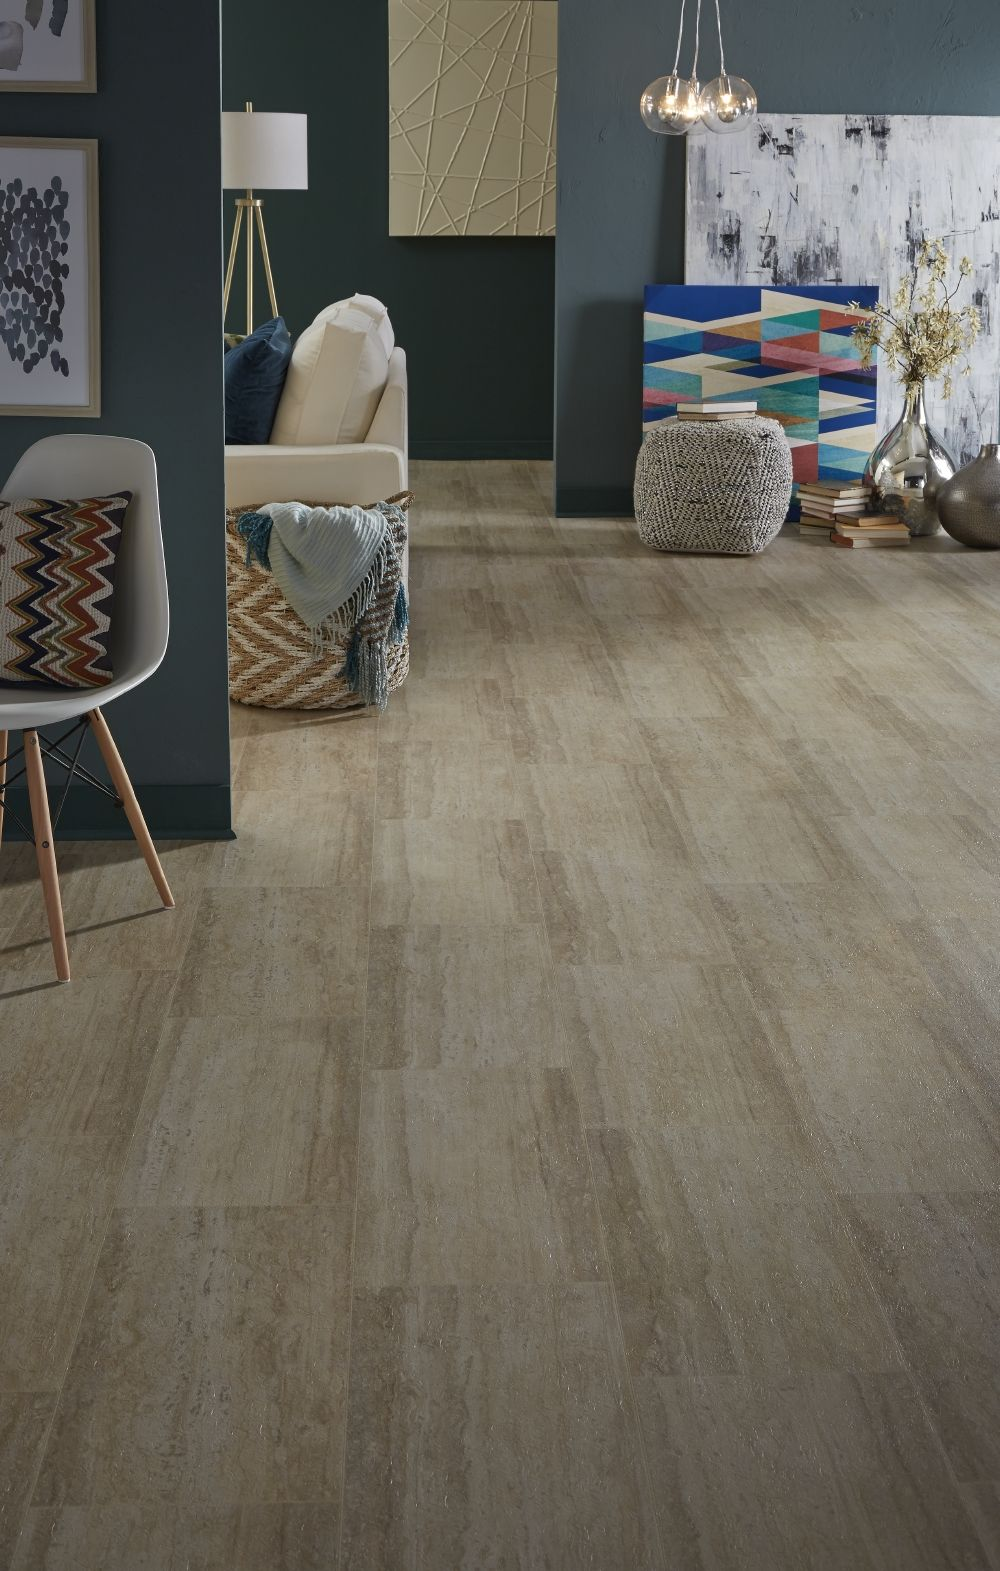 Luxury vinyl flooring in tile and plank styles mannington vinyl luxury vinyl flooring in tile and plank styles mannington vinyl sheet flooring flooring can dailygadgetfo Choice Image